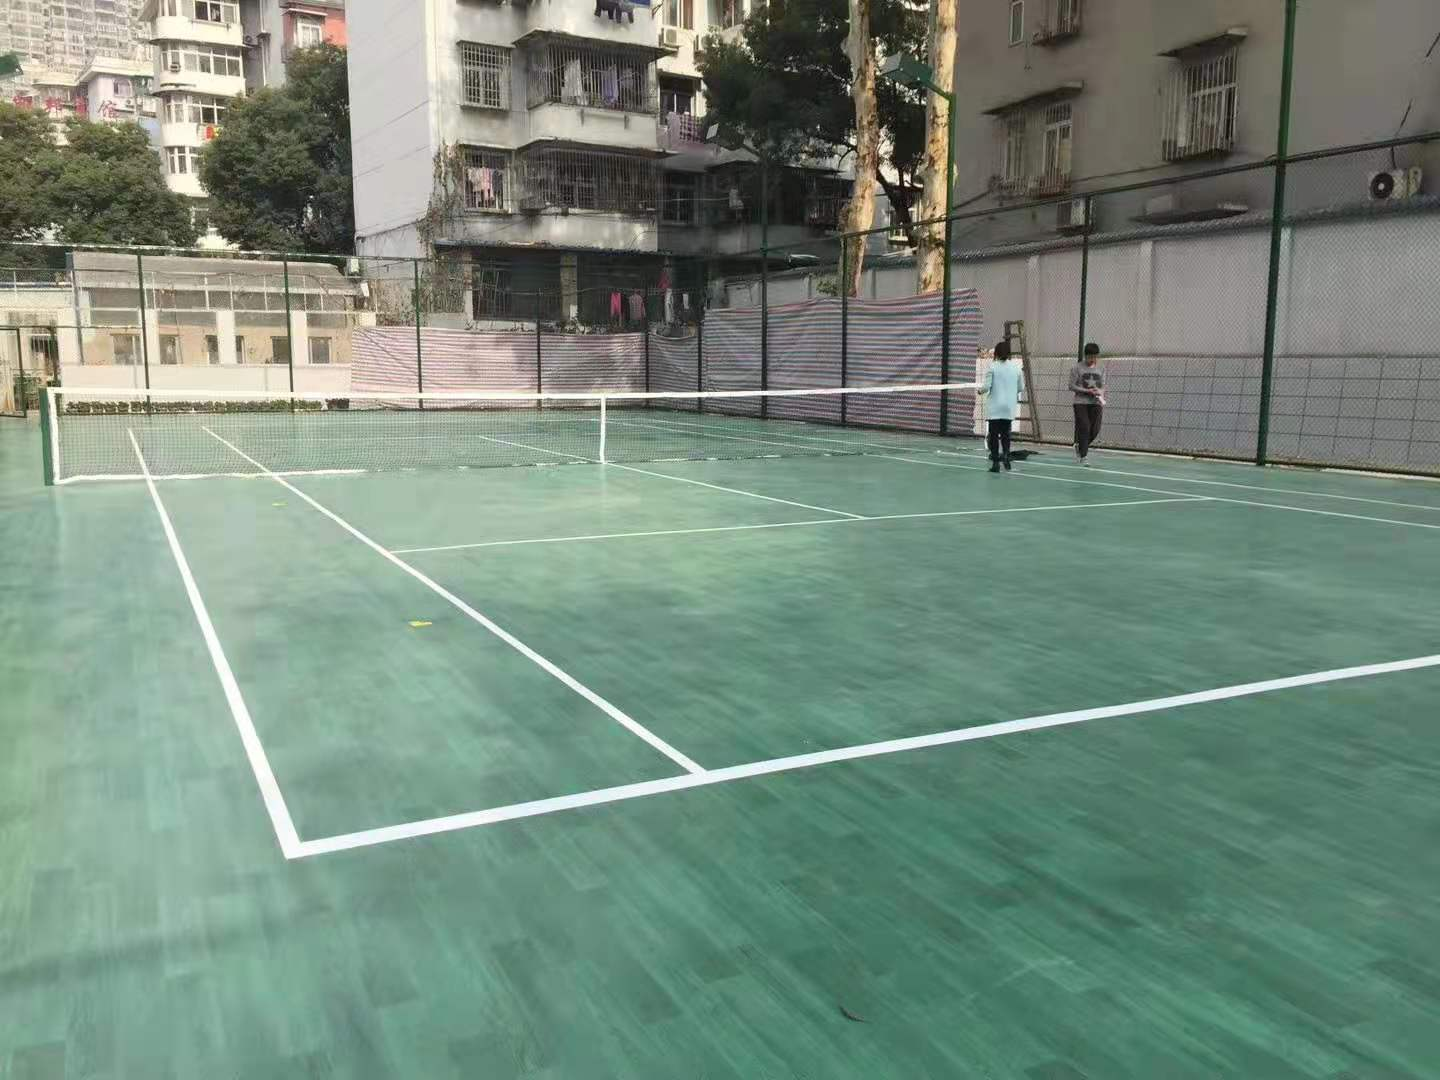 5.0mm Colorful Stone Surface For Outdoor Basketball Courts